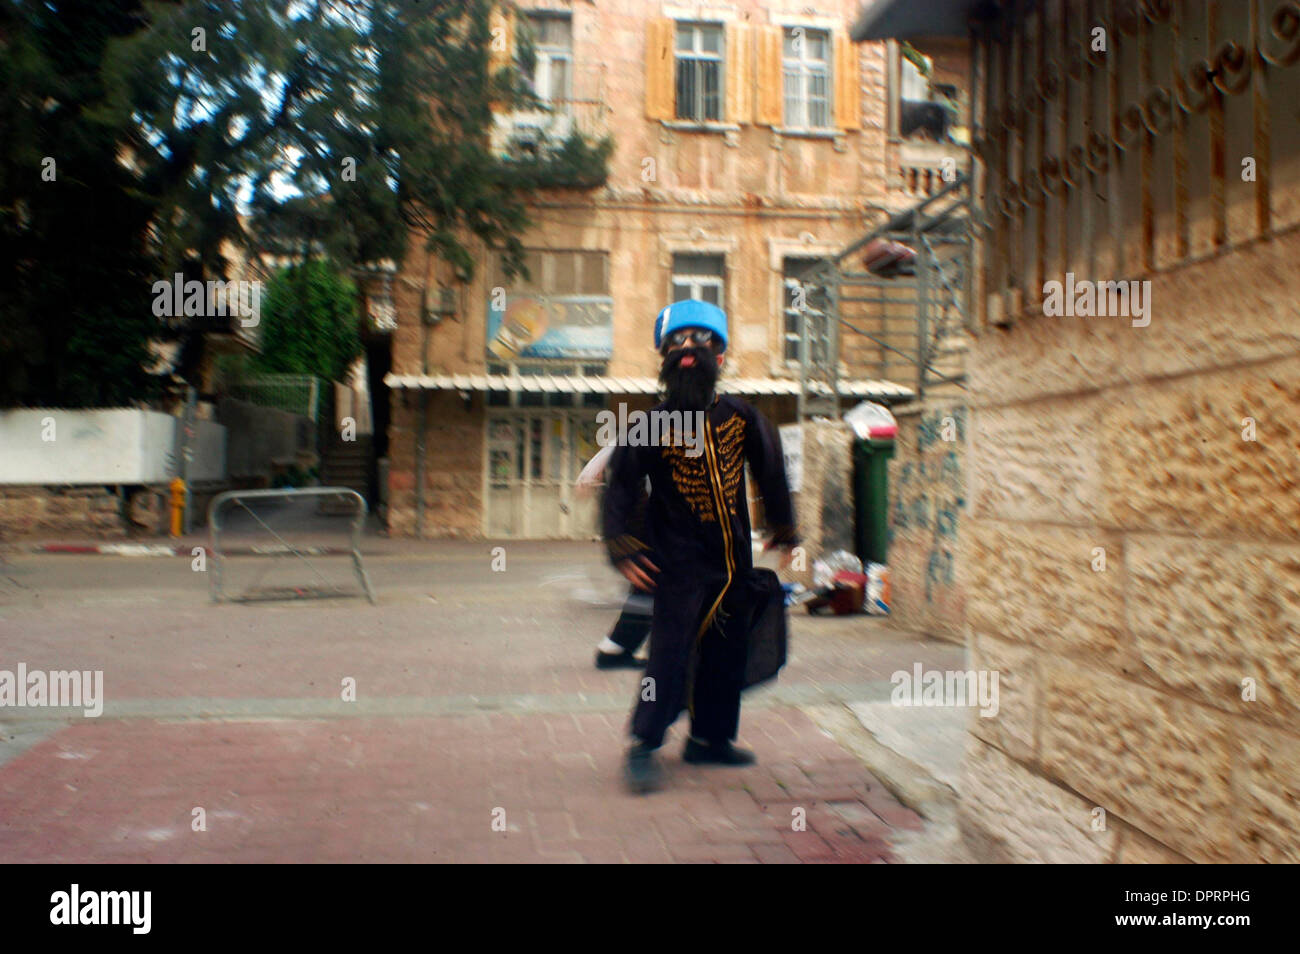 Dec 31, 2008 - Jerusalem, Israel - Celebrating the Jewish holiday Purim in Mea Shearim Neighborhood, Jerusalem, Israel on Wednesday March 15 2006. (Credit Image: © Rafael Ben-Ari/Chameleons Eye/ZUMA Press) - Stock Image